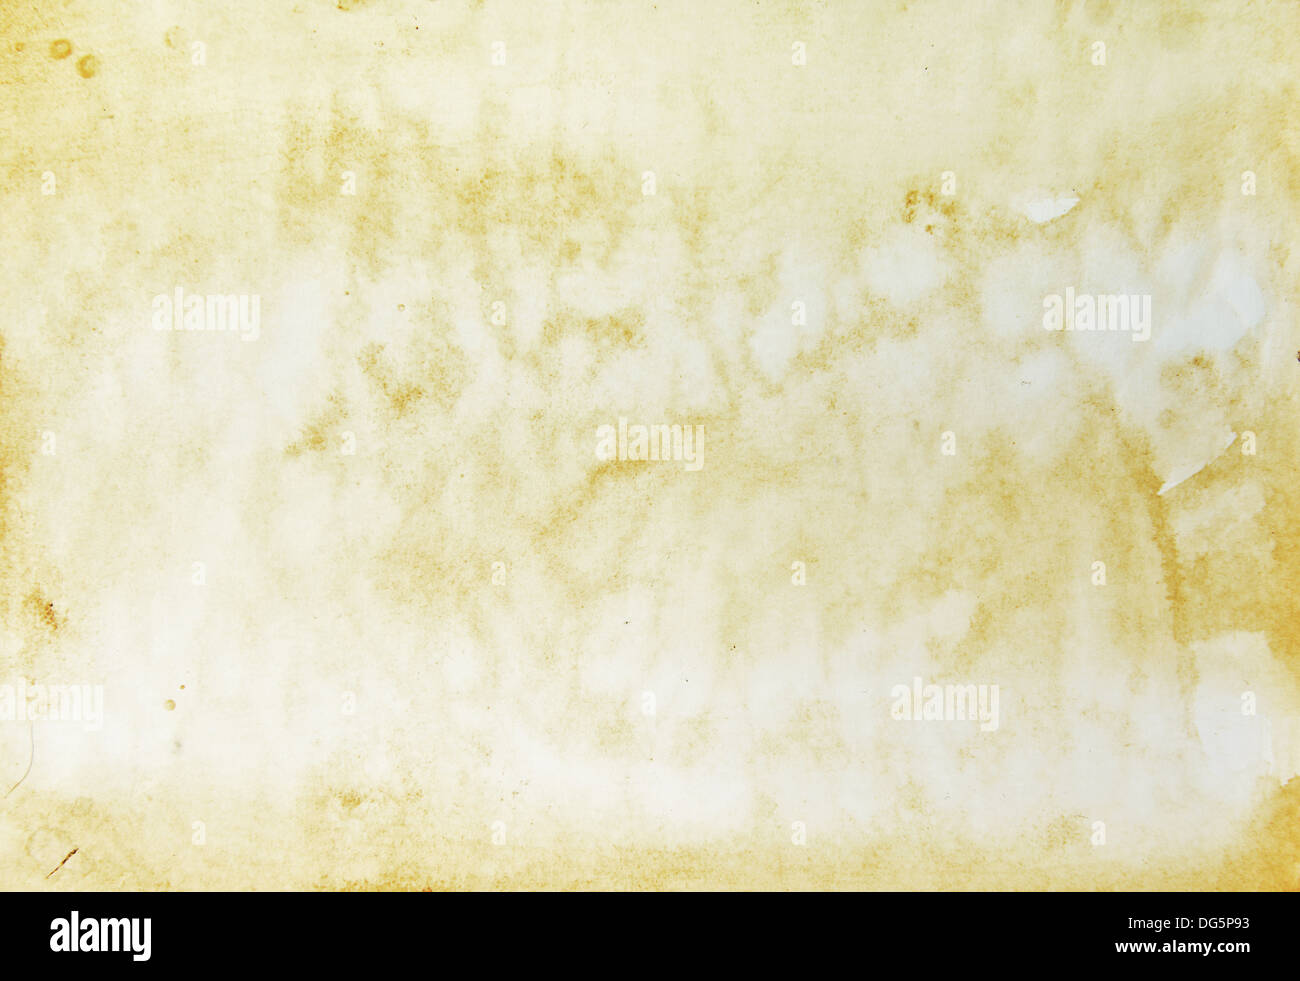 Decorative old paper pattern background - Stock Image